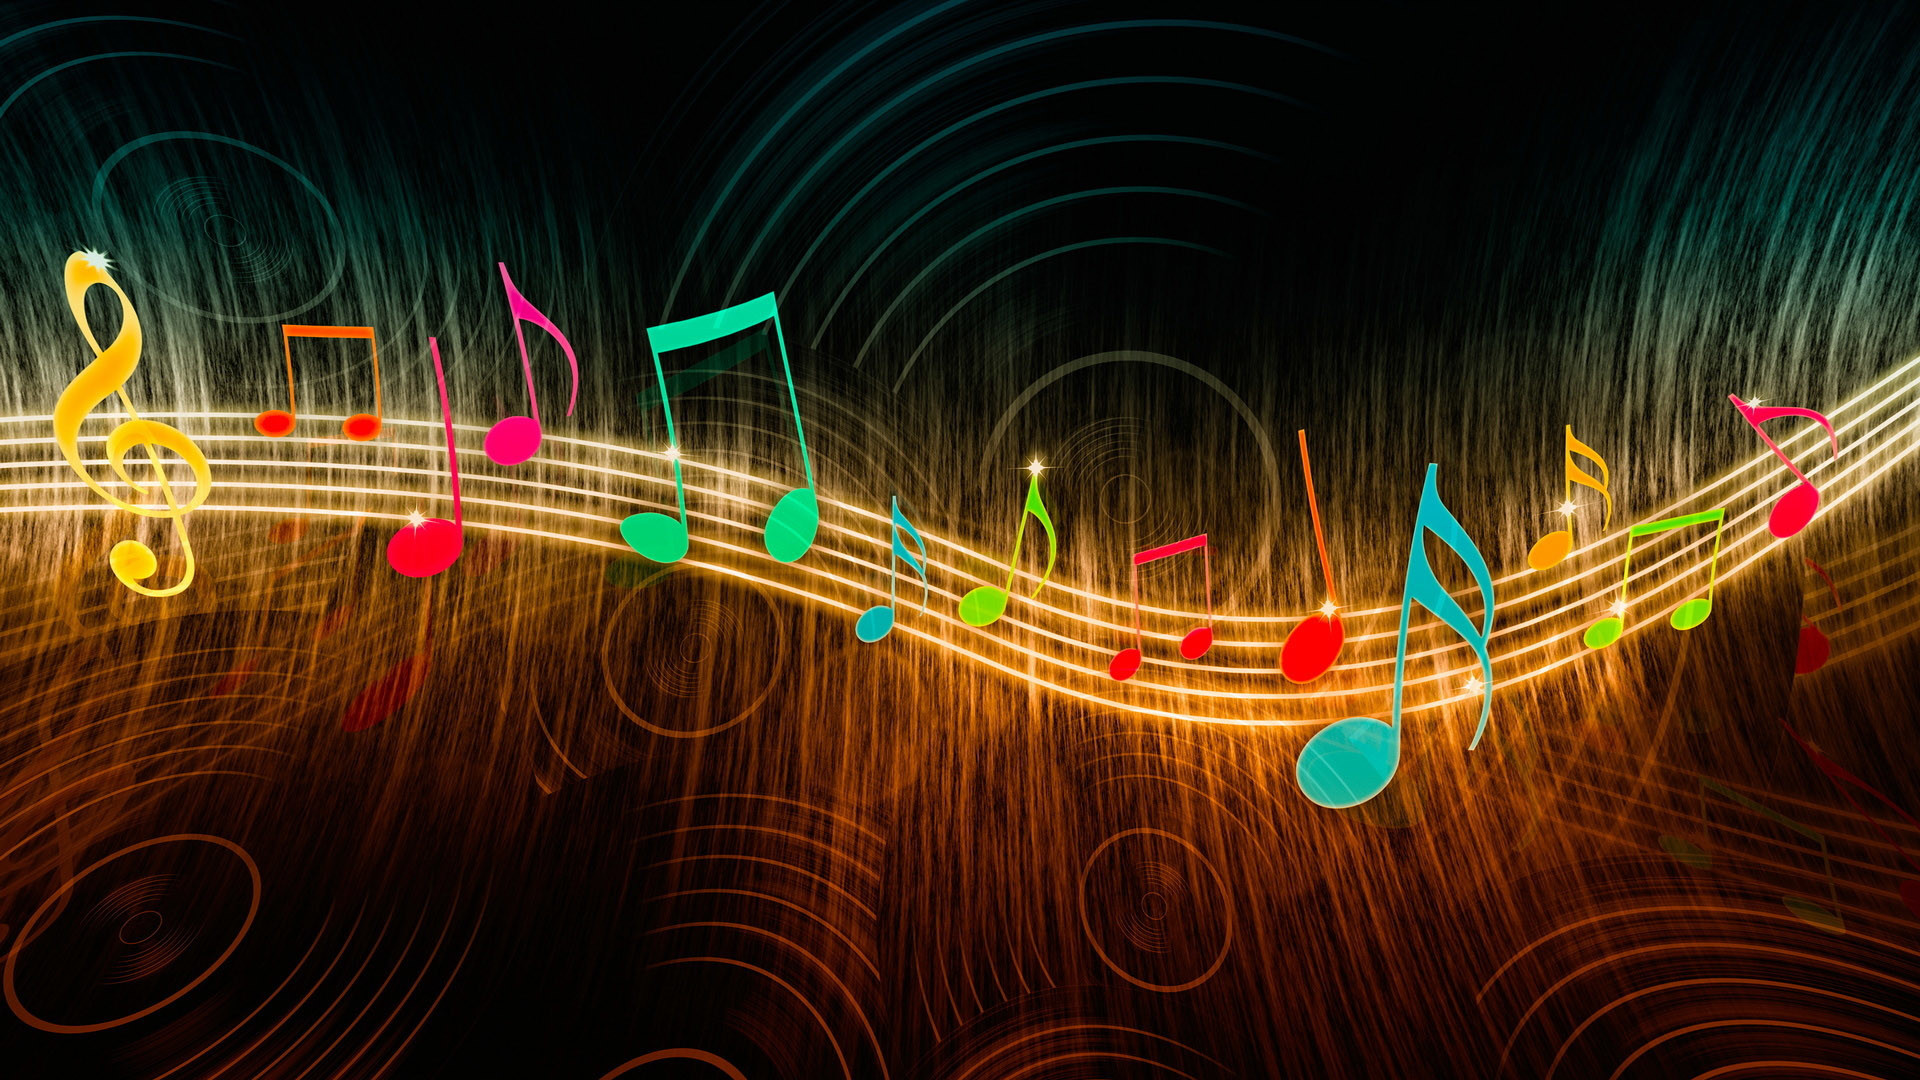 Best Wallpaper Music Computer - 736023-backgrounds-for-music-1920x1080-for-ipad-pro  Snapshot_356970.jpg